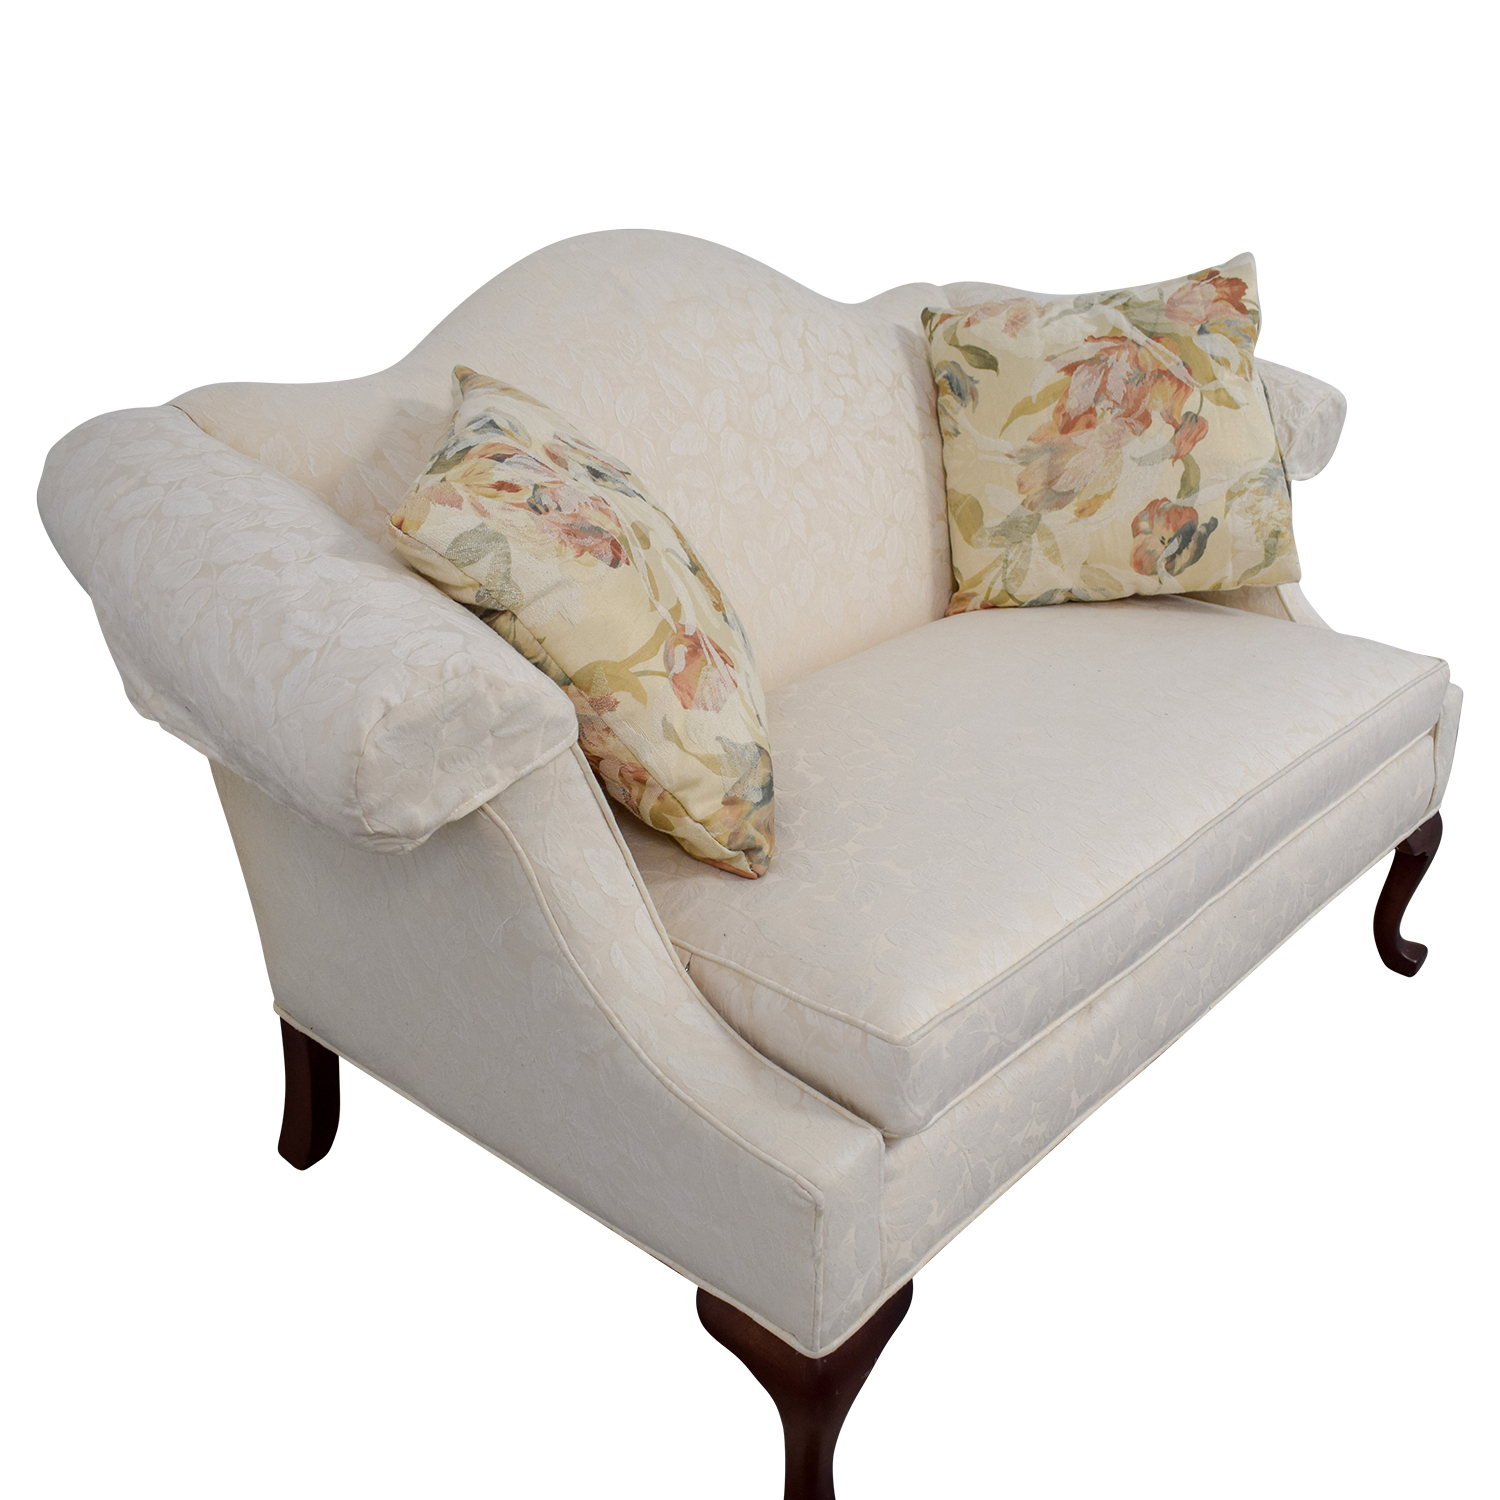 Ethan Allen Ethan Allen White Love Seat with Floral Pillows dimensions